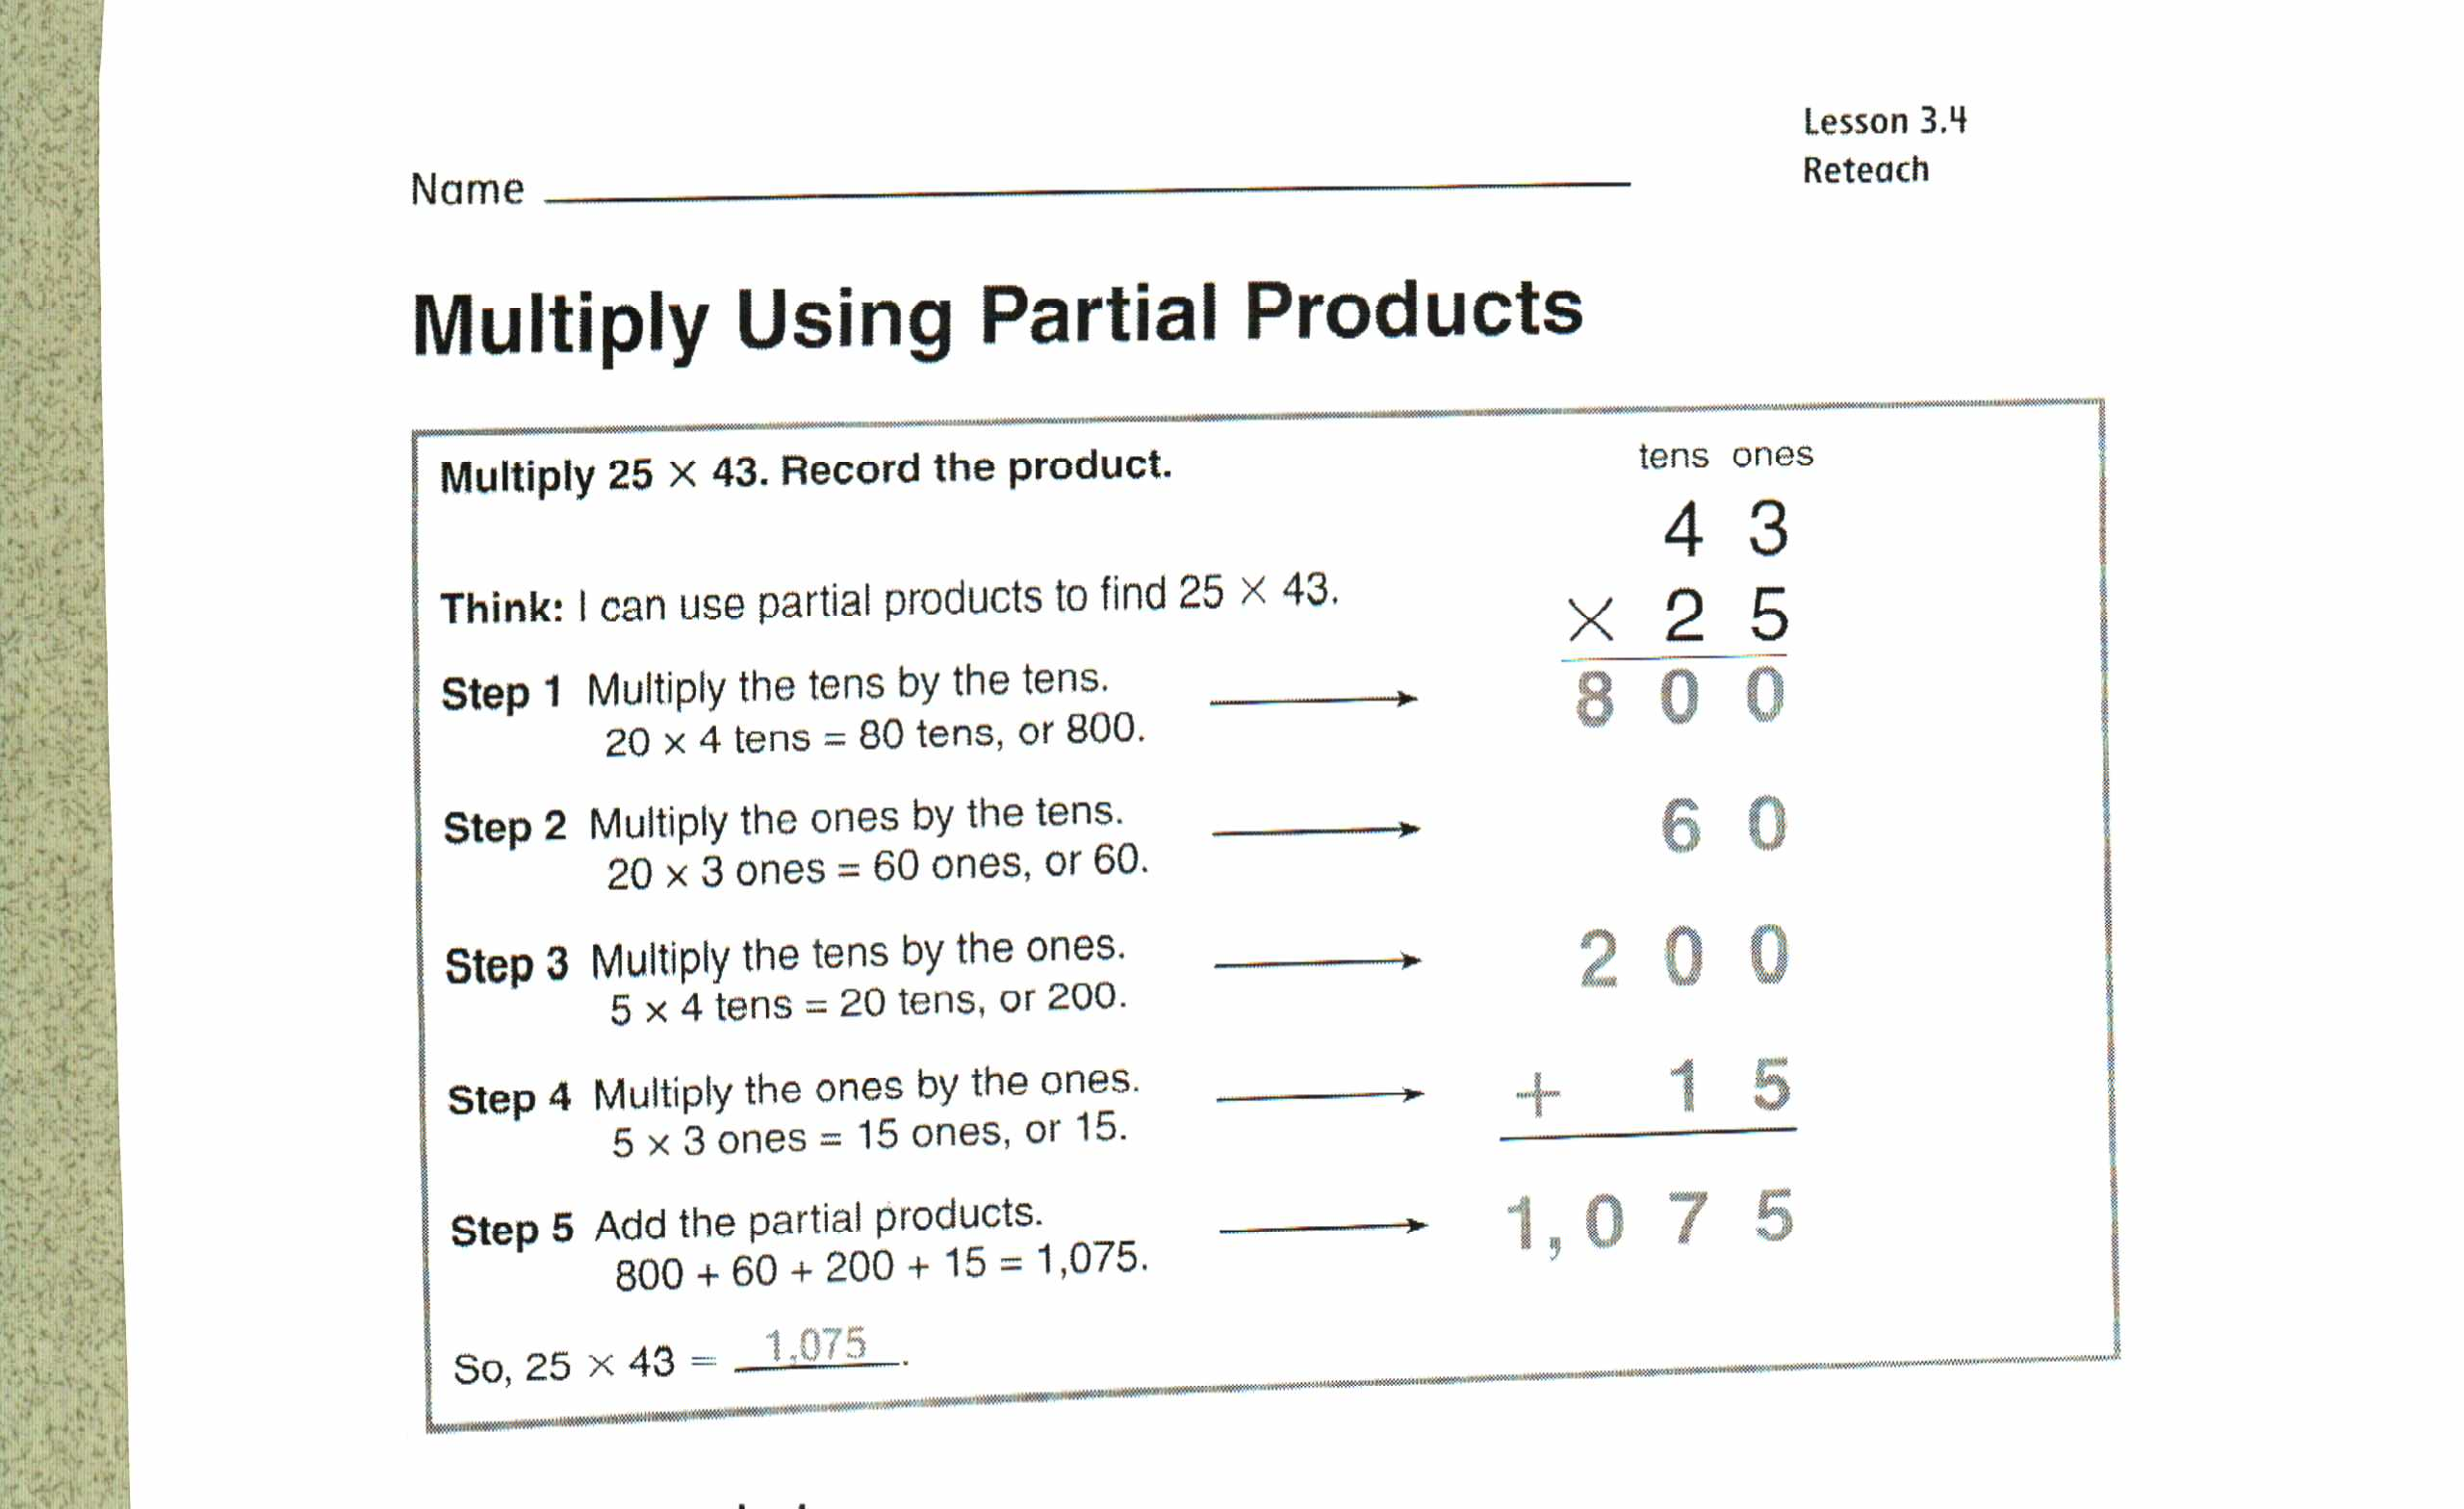 Worksheet 8181041 Partial Product Multiplication Worksheet – Multiplication Worksheets 0-2